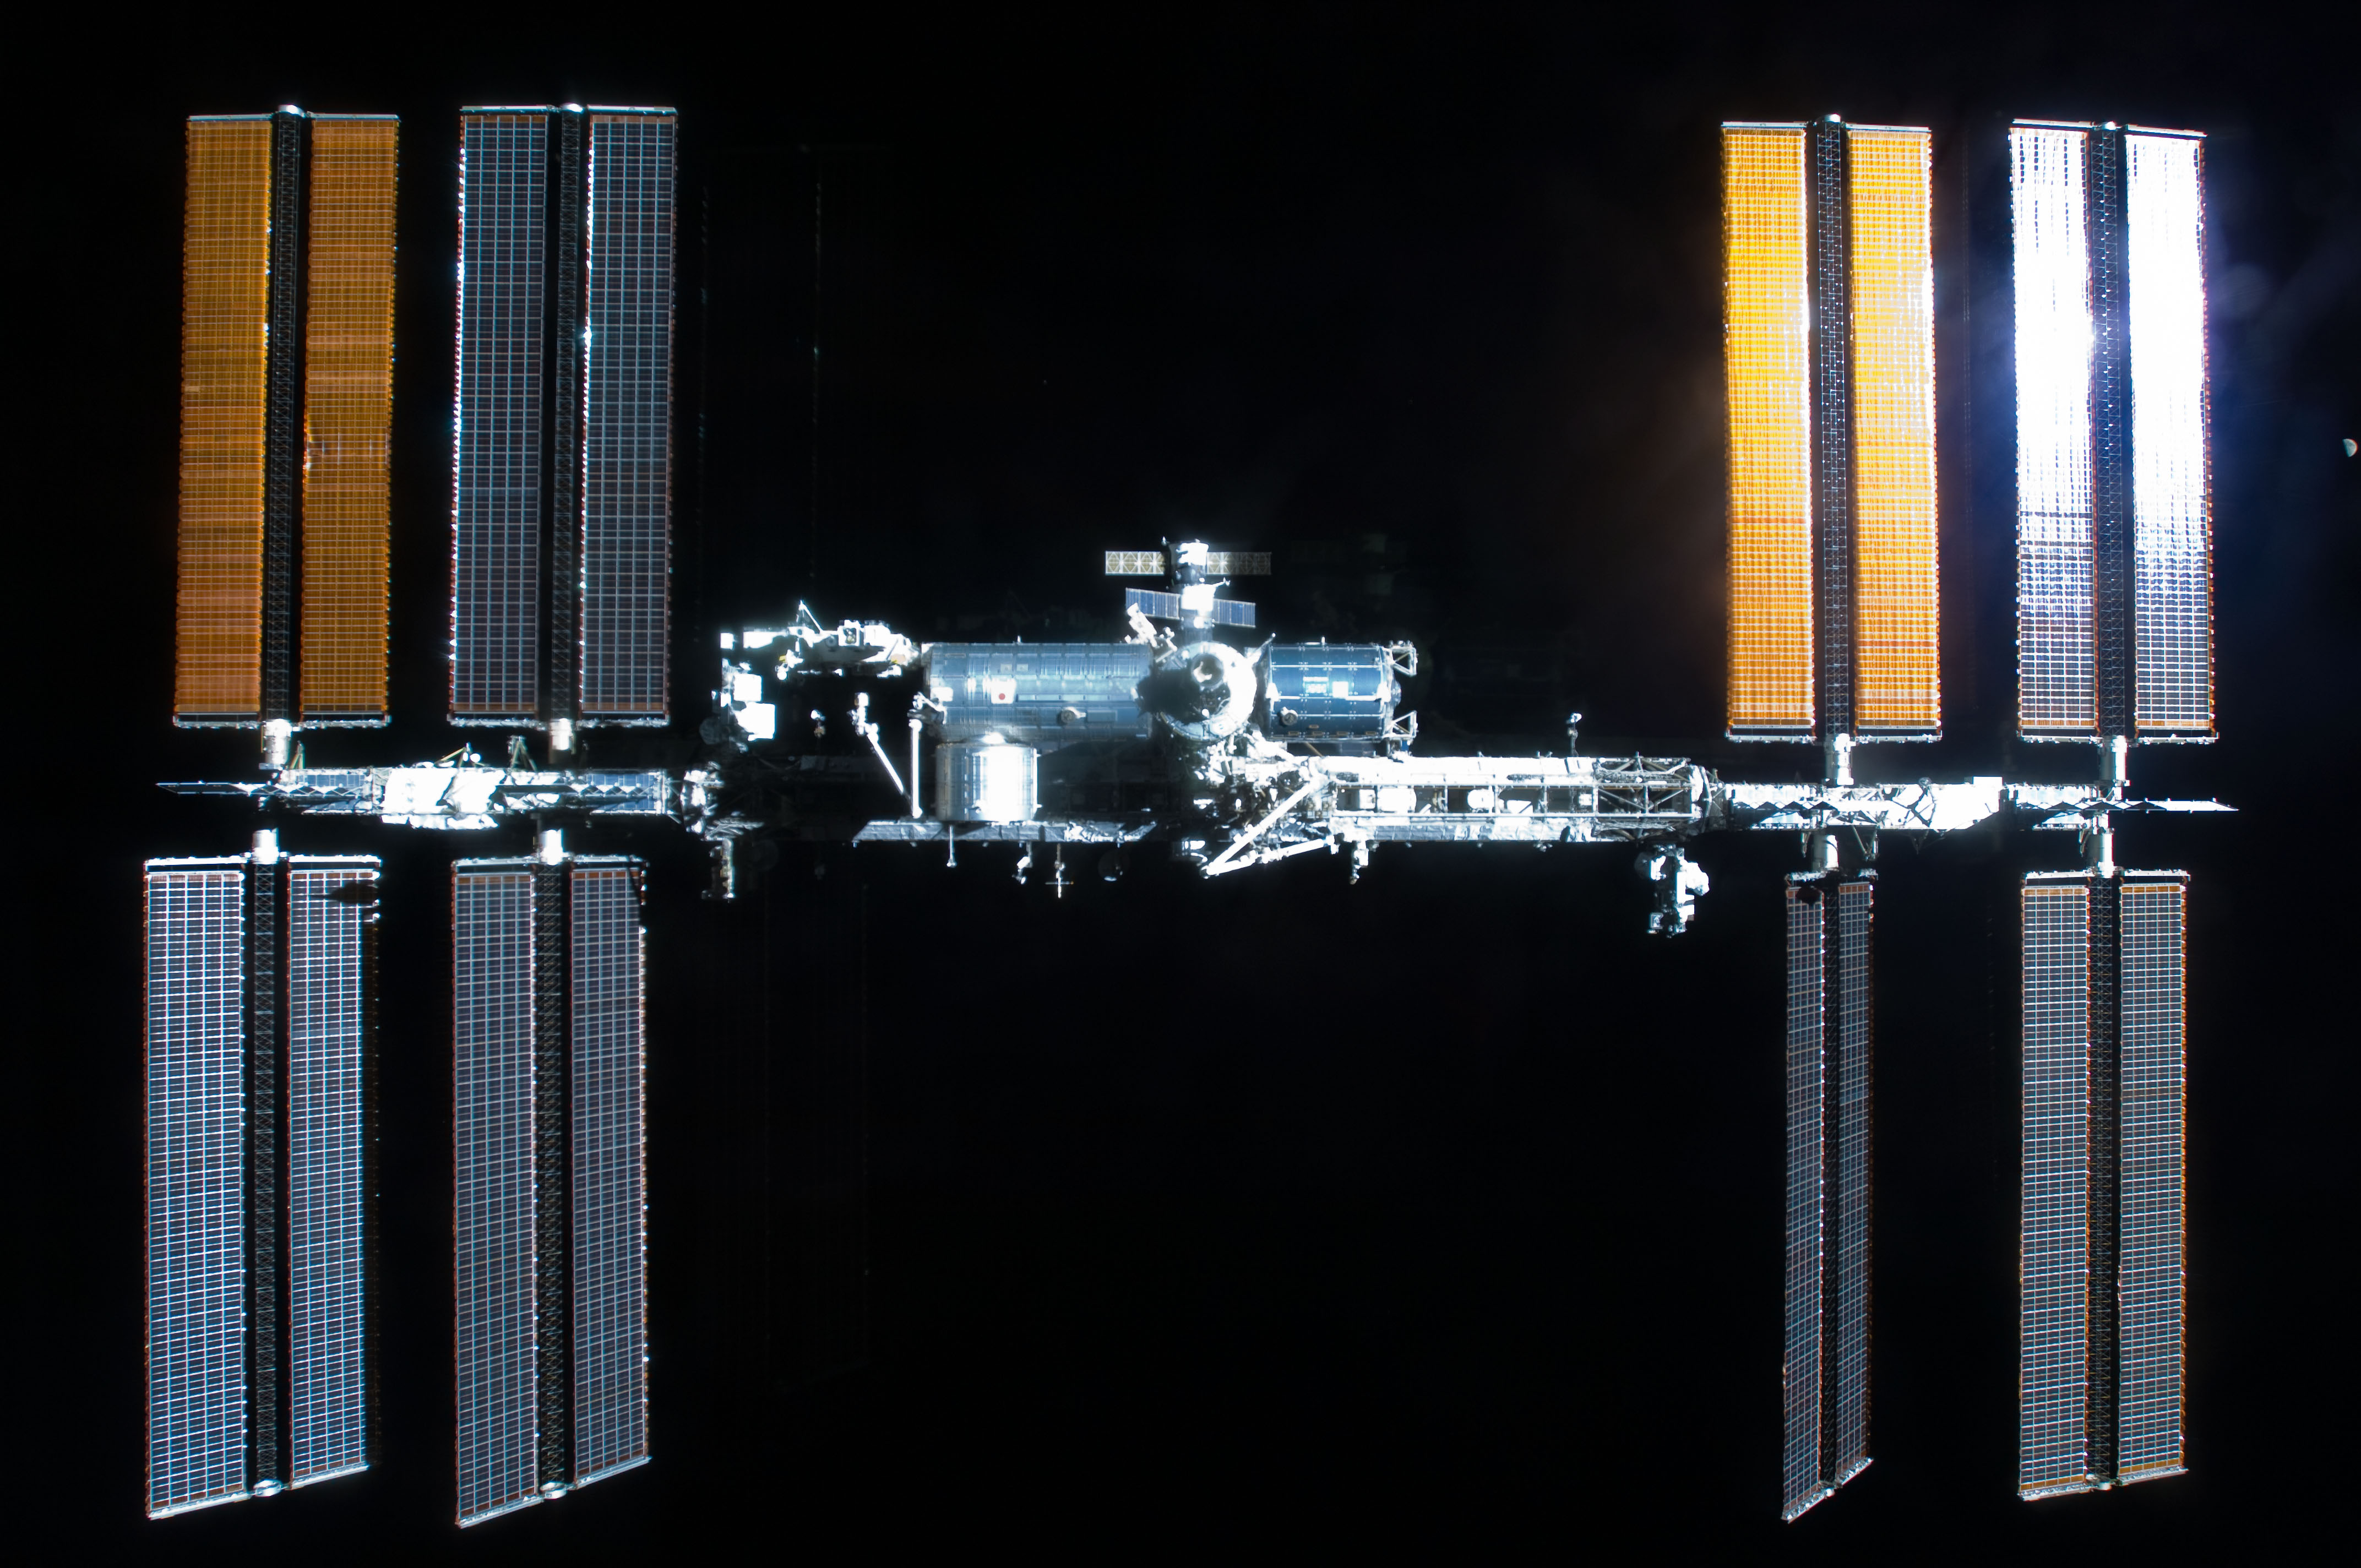 S129E009213 - STS-129 - Overall view of the ISS taken as Atlantis departs at the end of the STS-129 Mission